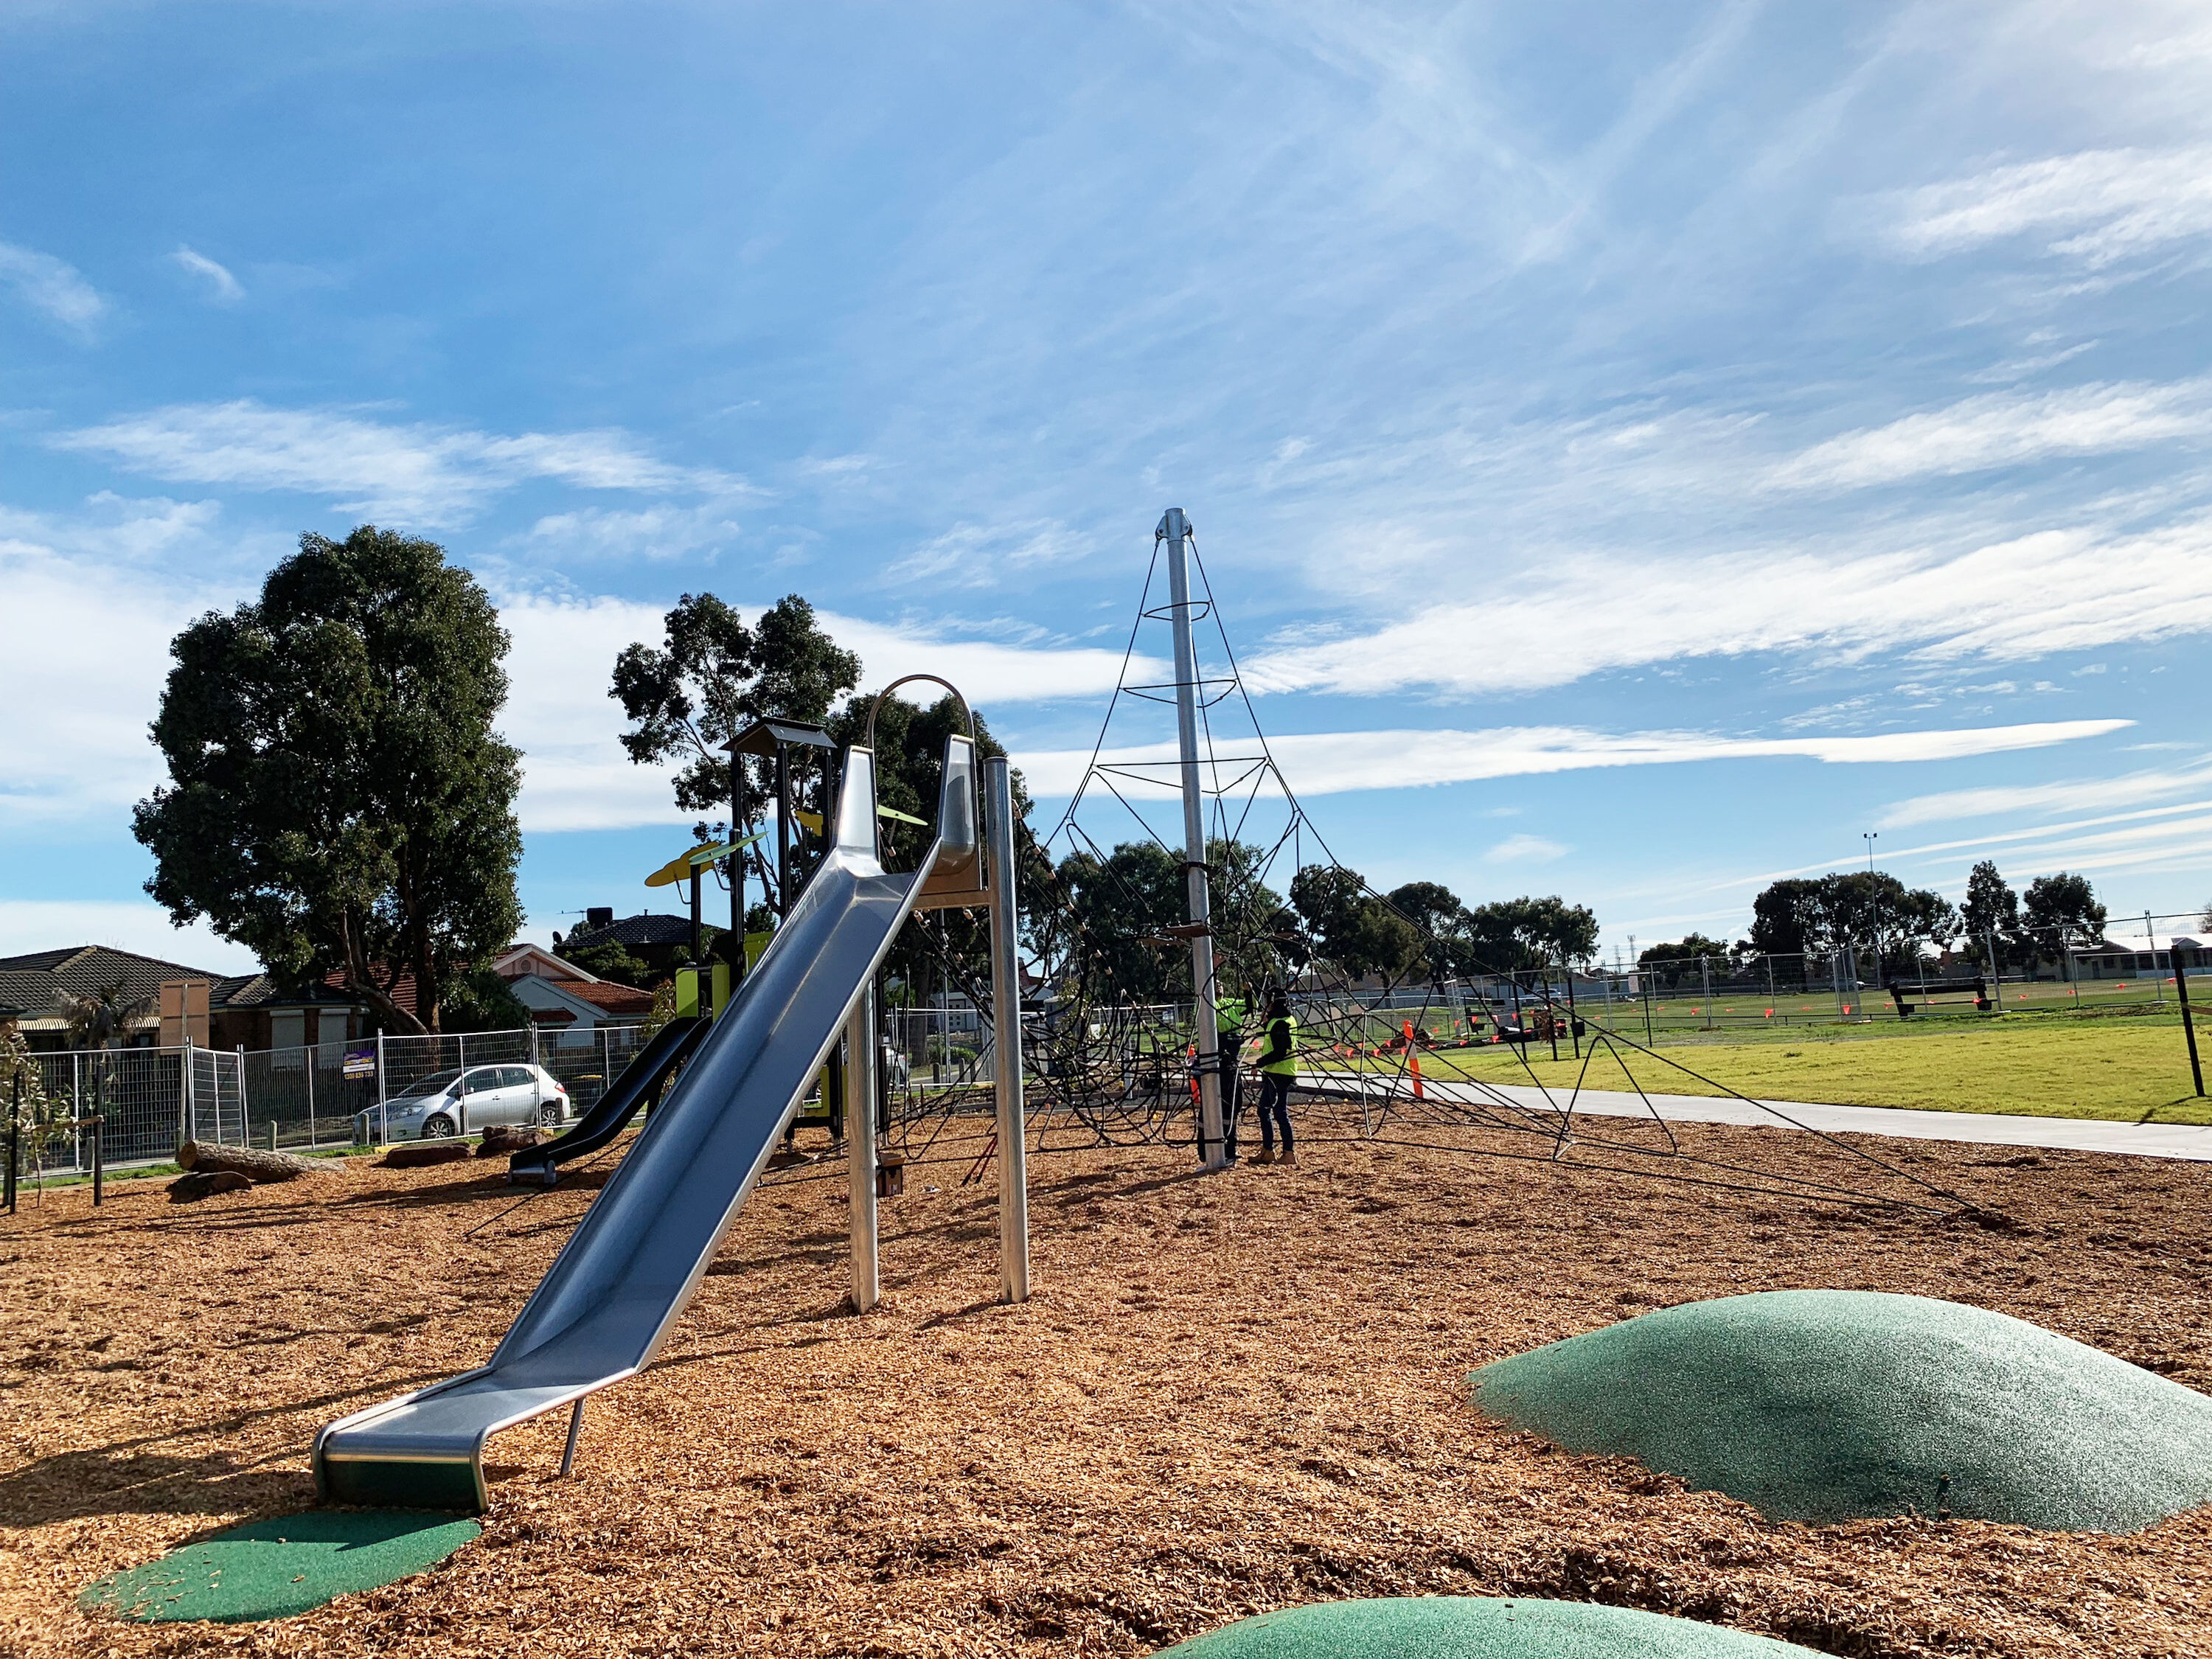 Playground with Rope tower and stainless steel slide